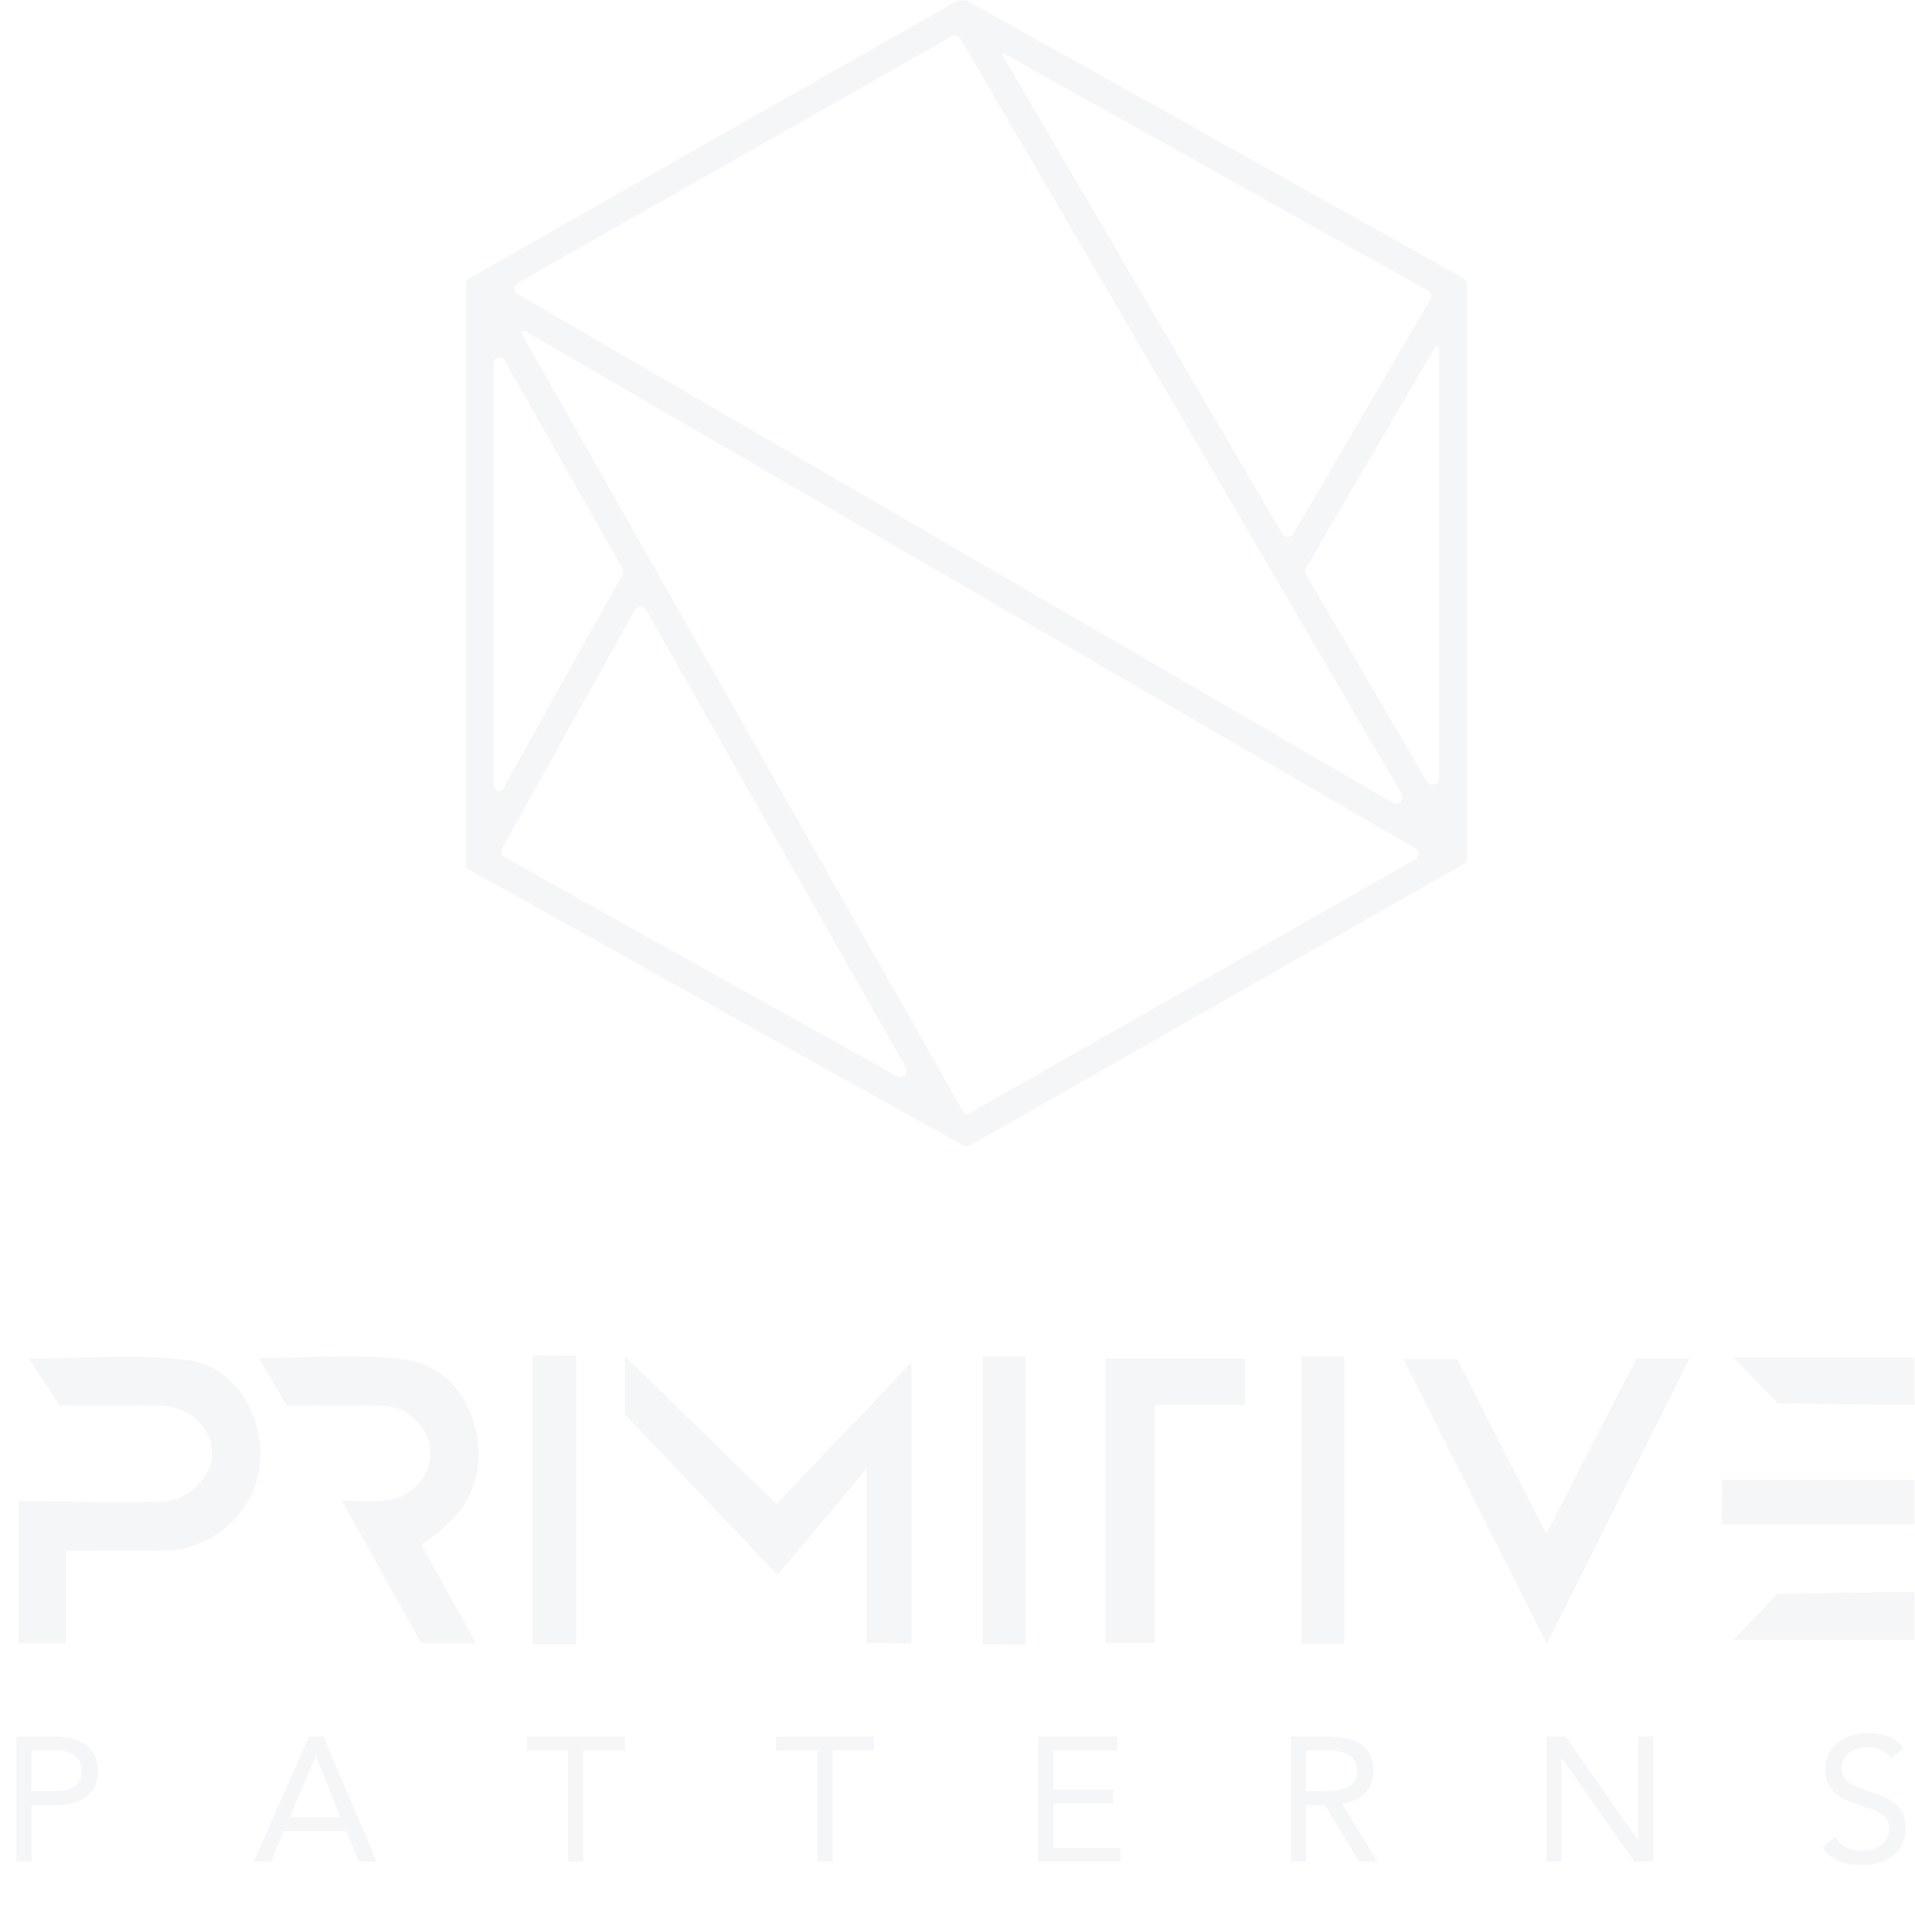 Primitive Patterns